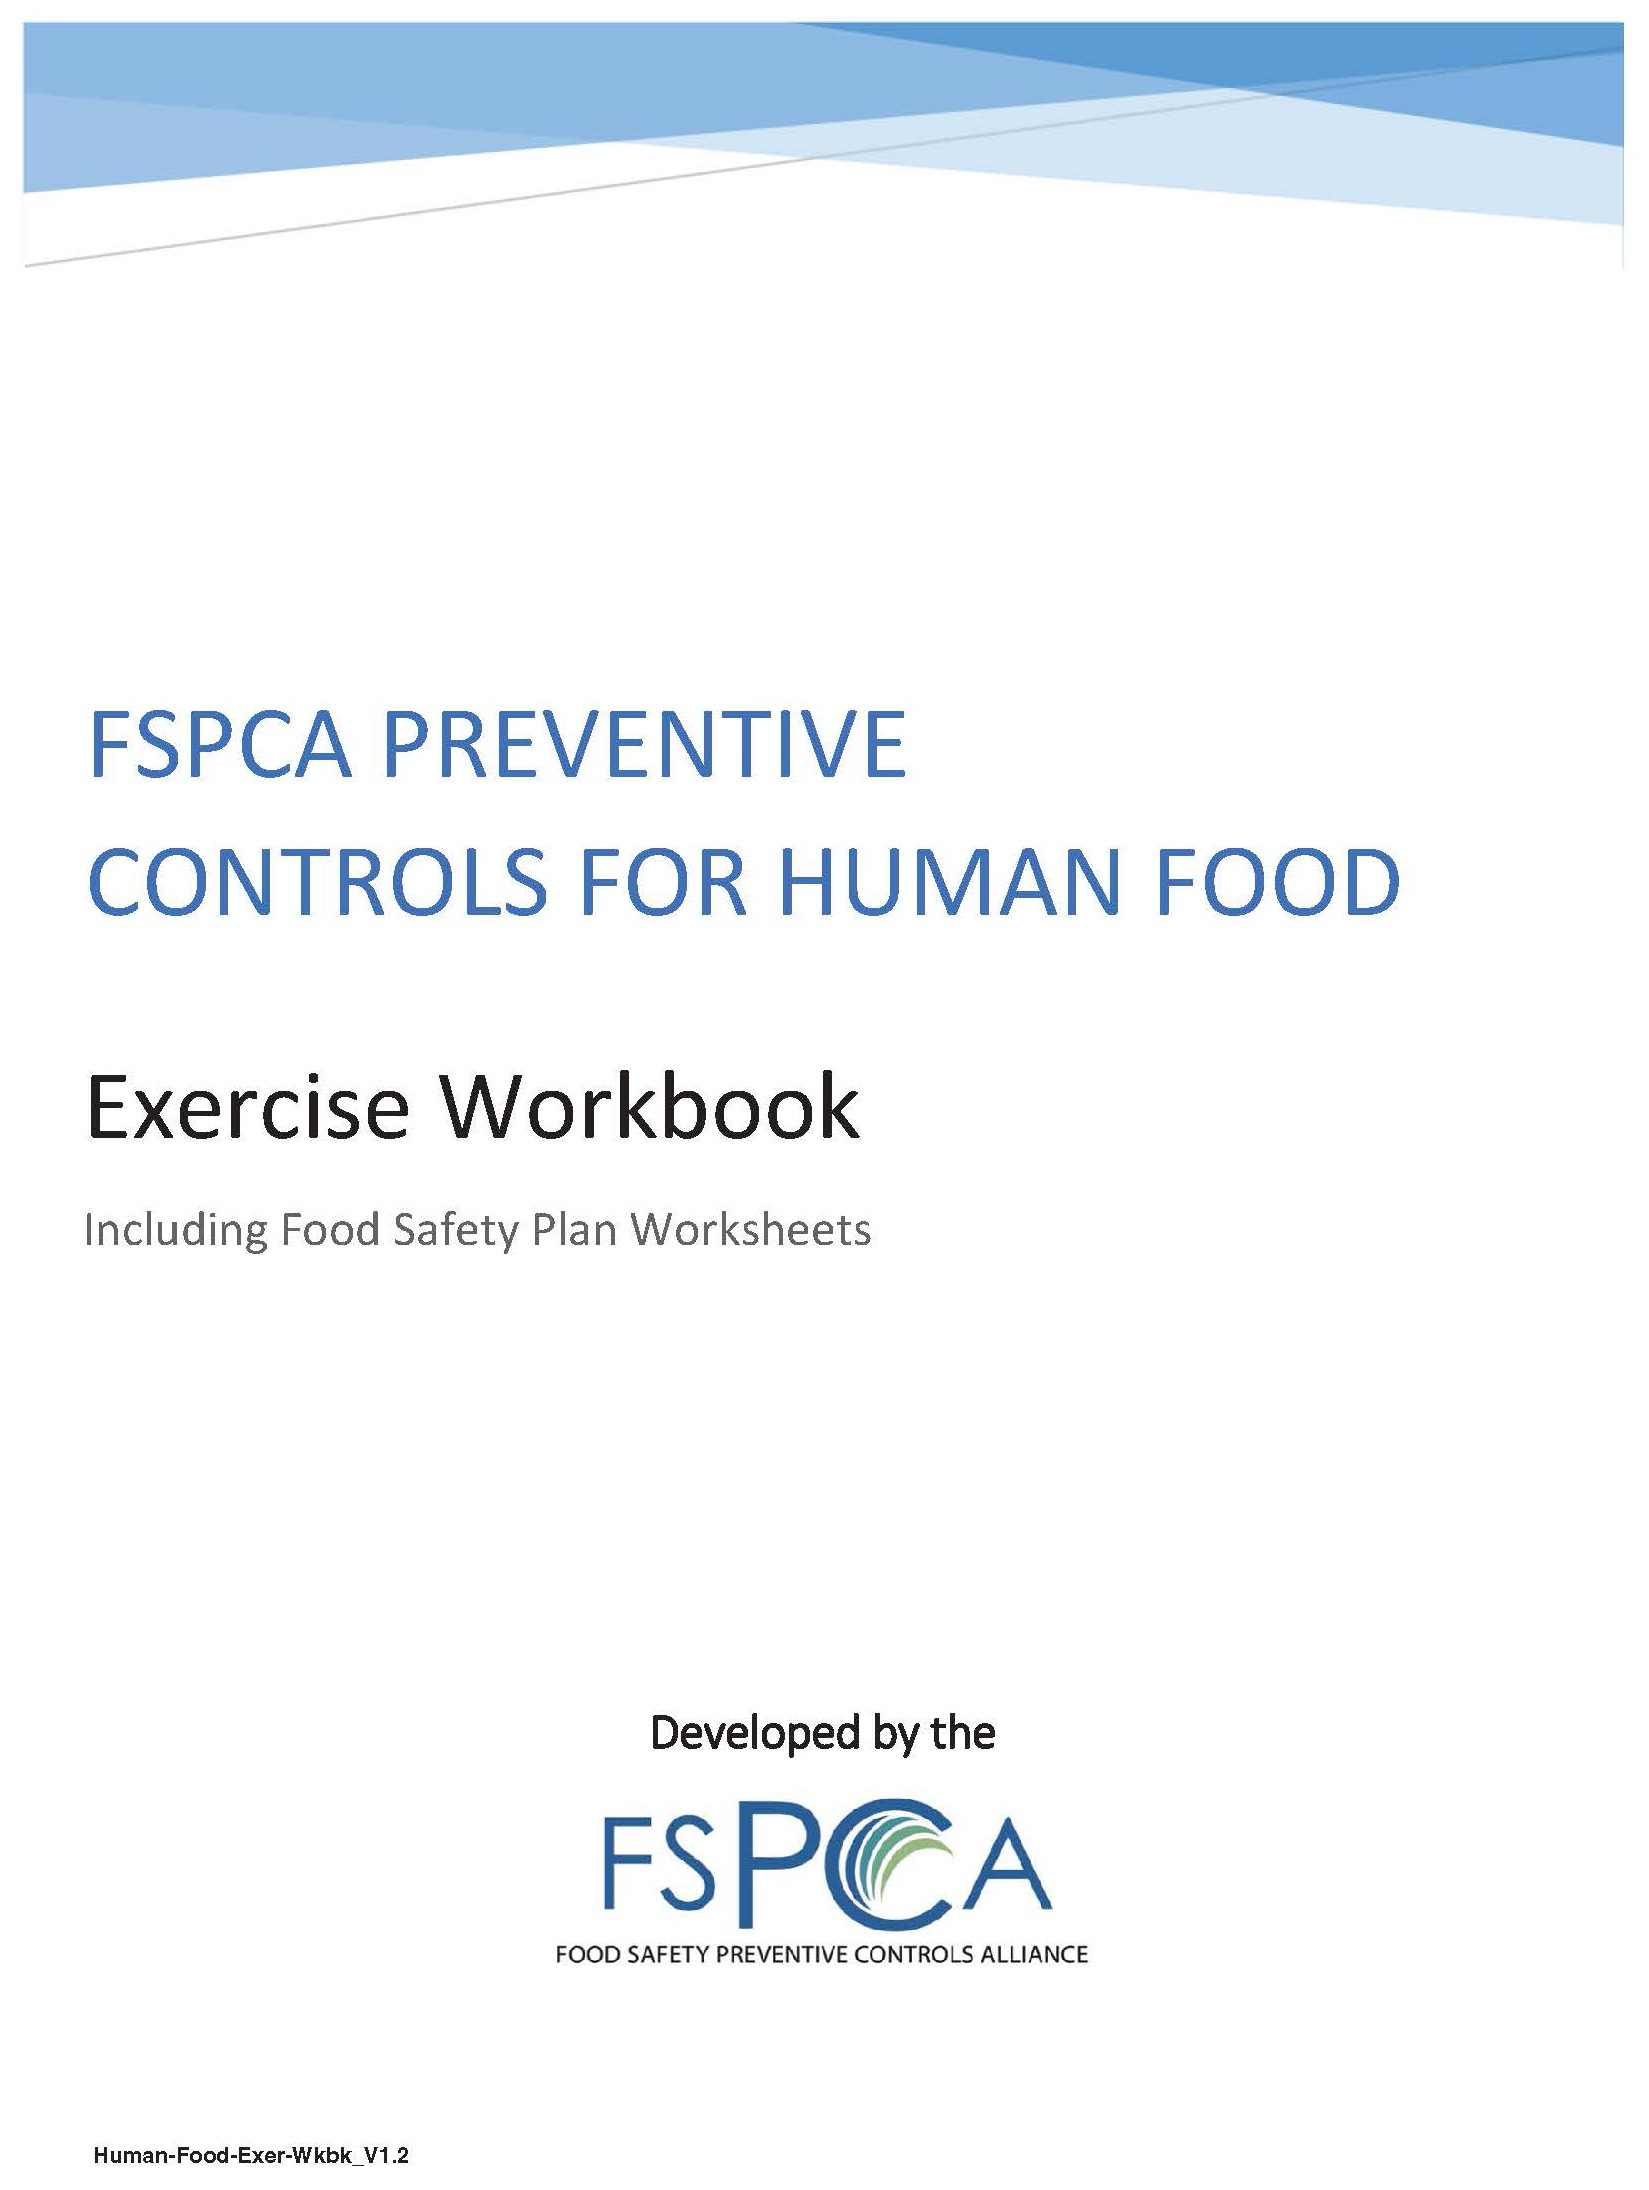 FSPCA Exercise Workbook V1.2